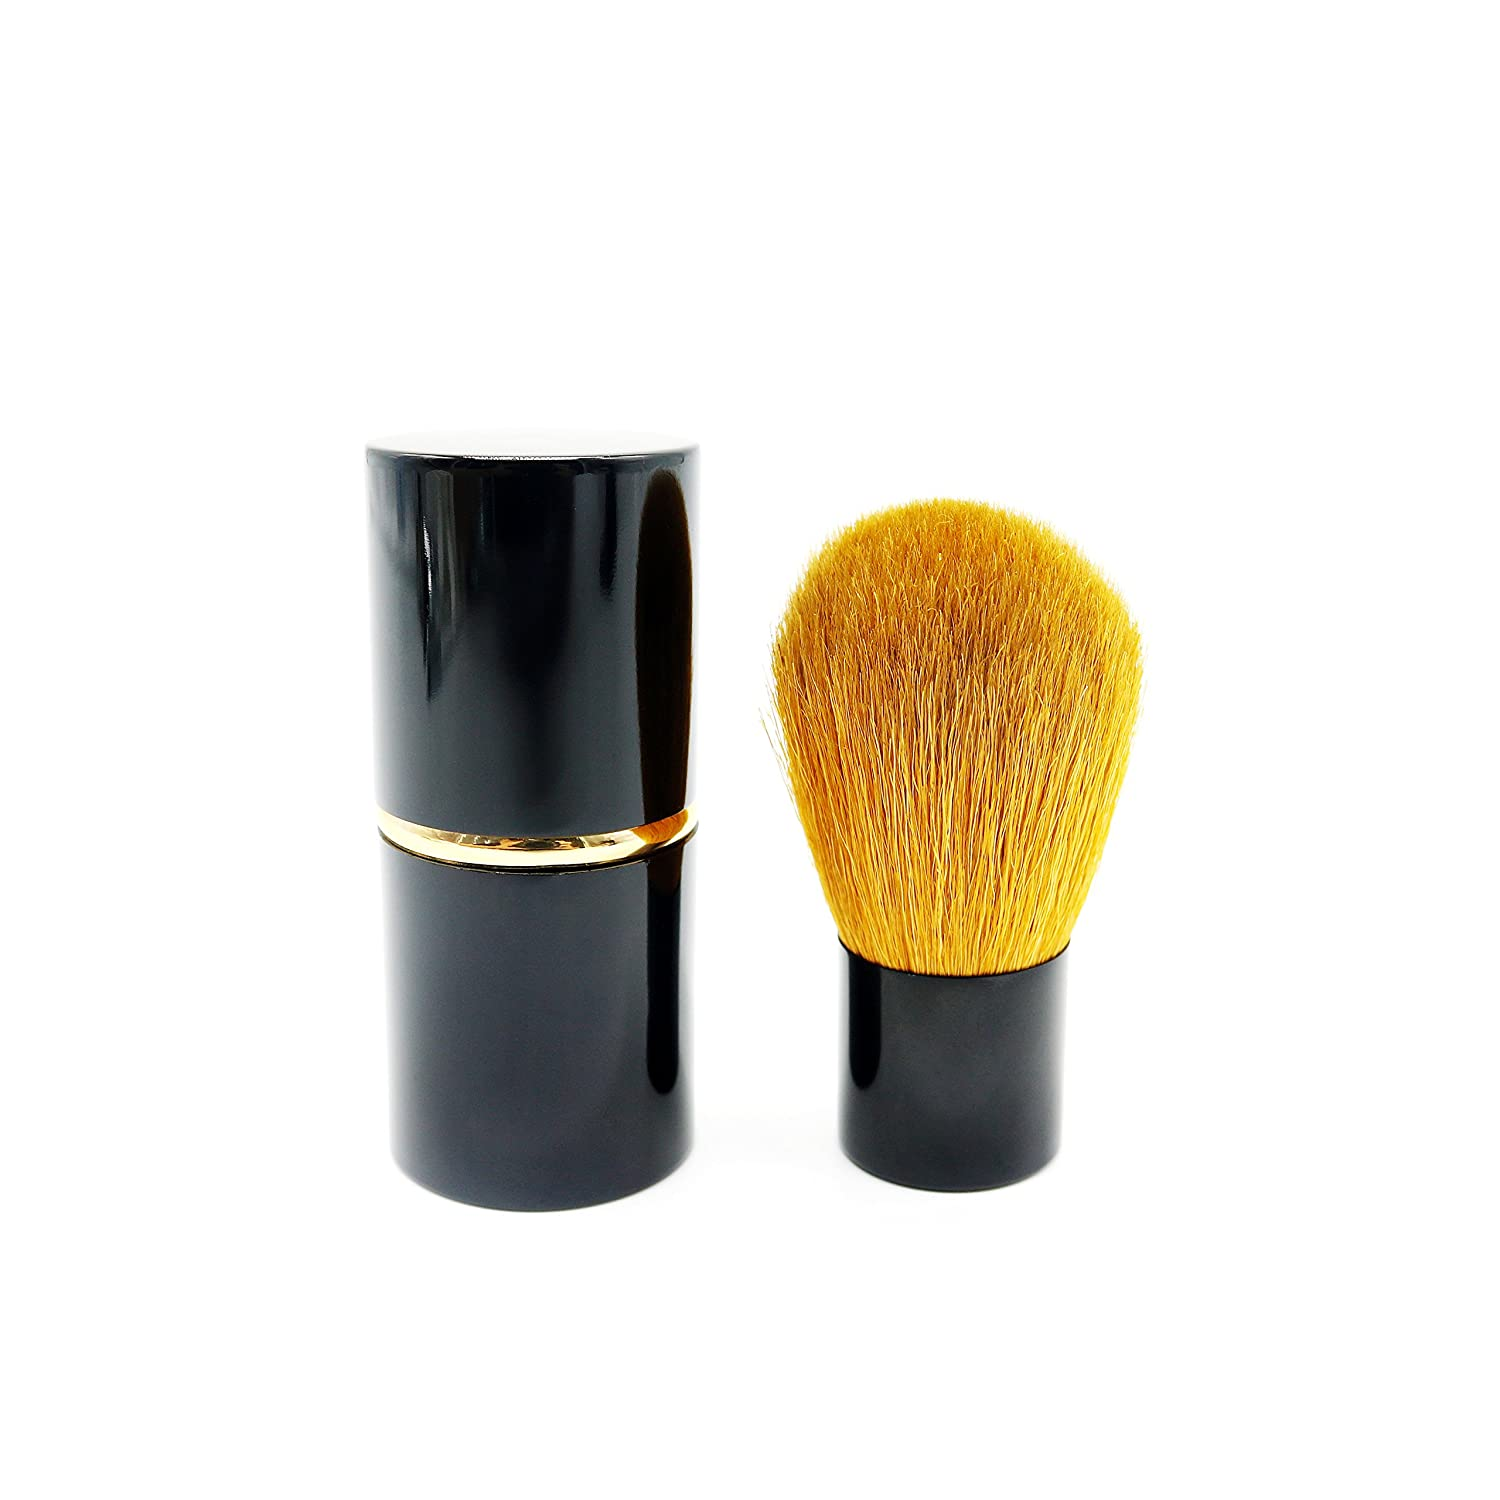 Cosmetic Kabuki Brush for Powder Mineral Foundation Blending Blush Makeup Brush with Premium Goat Hair by JDK JDK Makeup